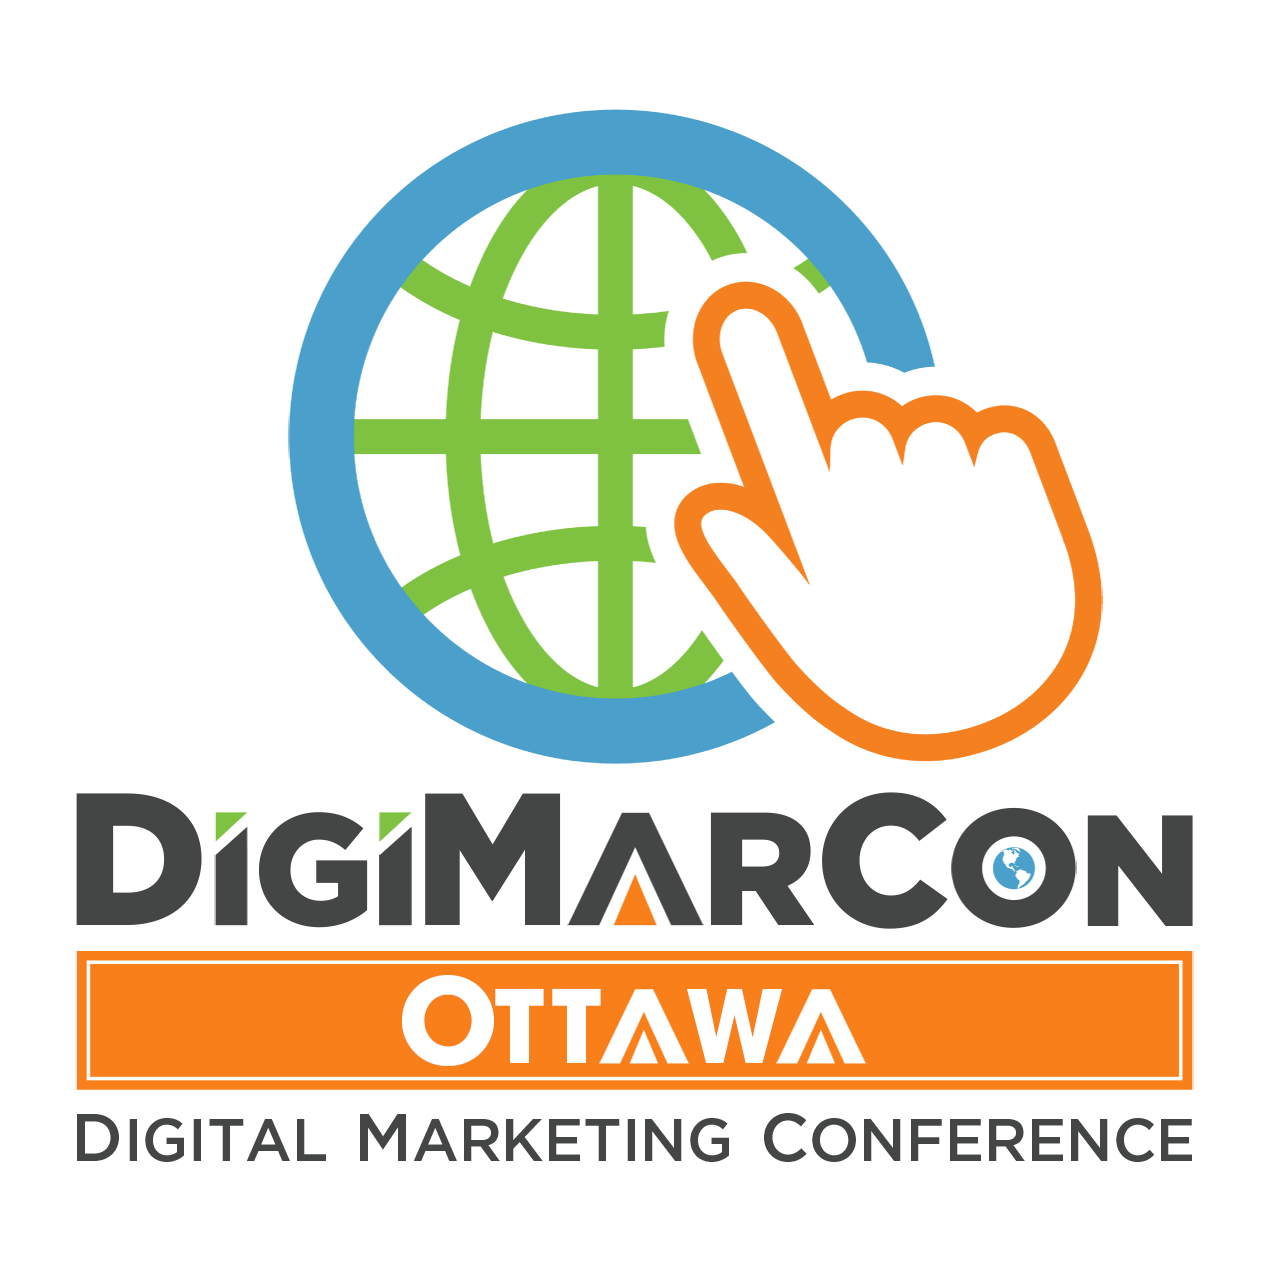 Ottawa Digital Marketing, Media & Advertising Conference